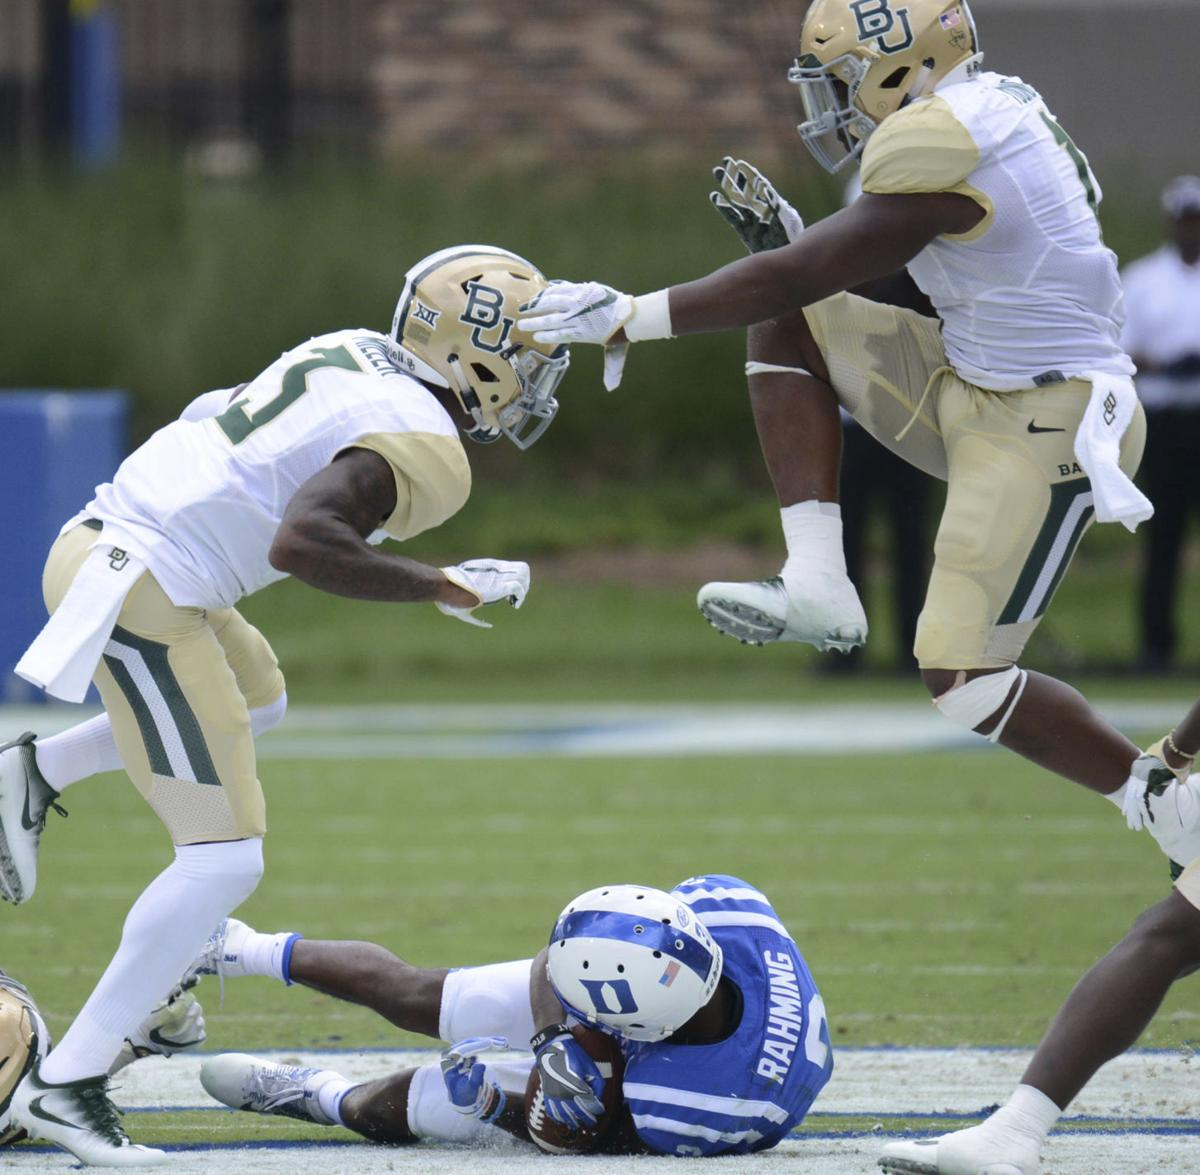 Baylor Football At Duke Sept 16 2017 Photos Baylor Sports